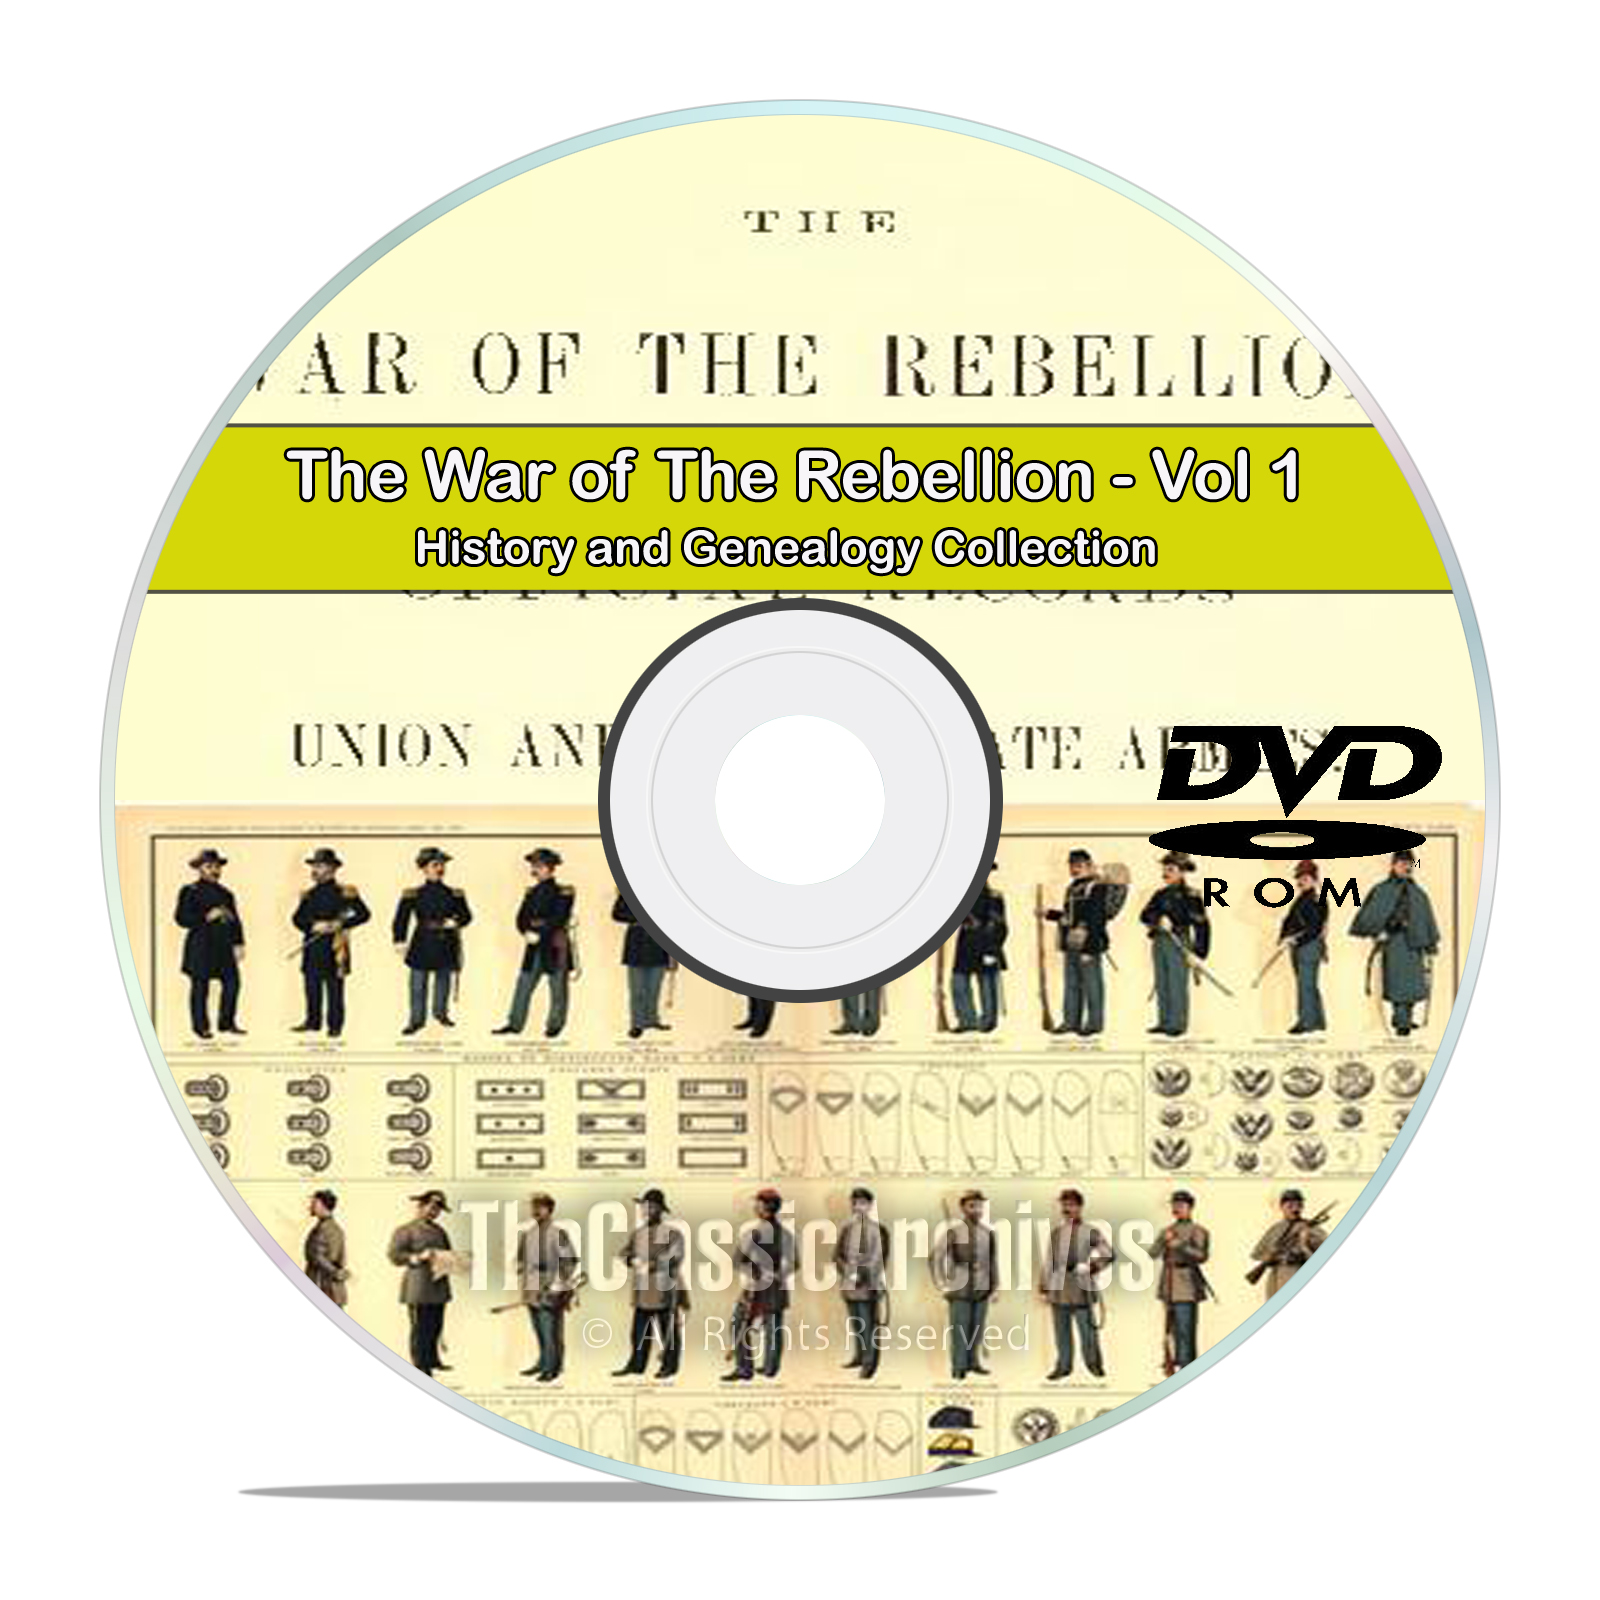 The Civil War of the Rebellion, Records, Atlas History Books Volume 1 DVD